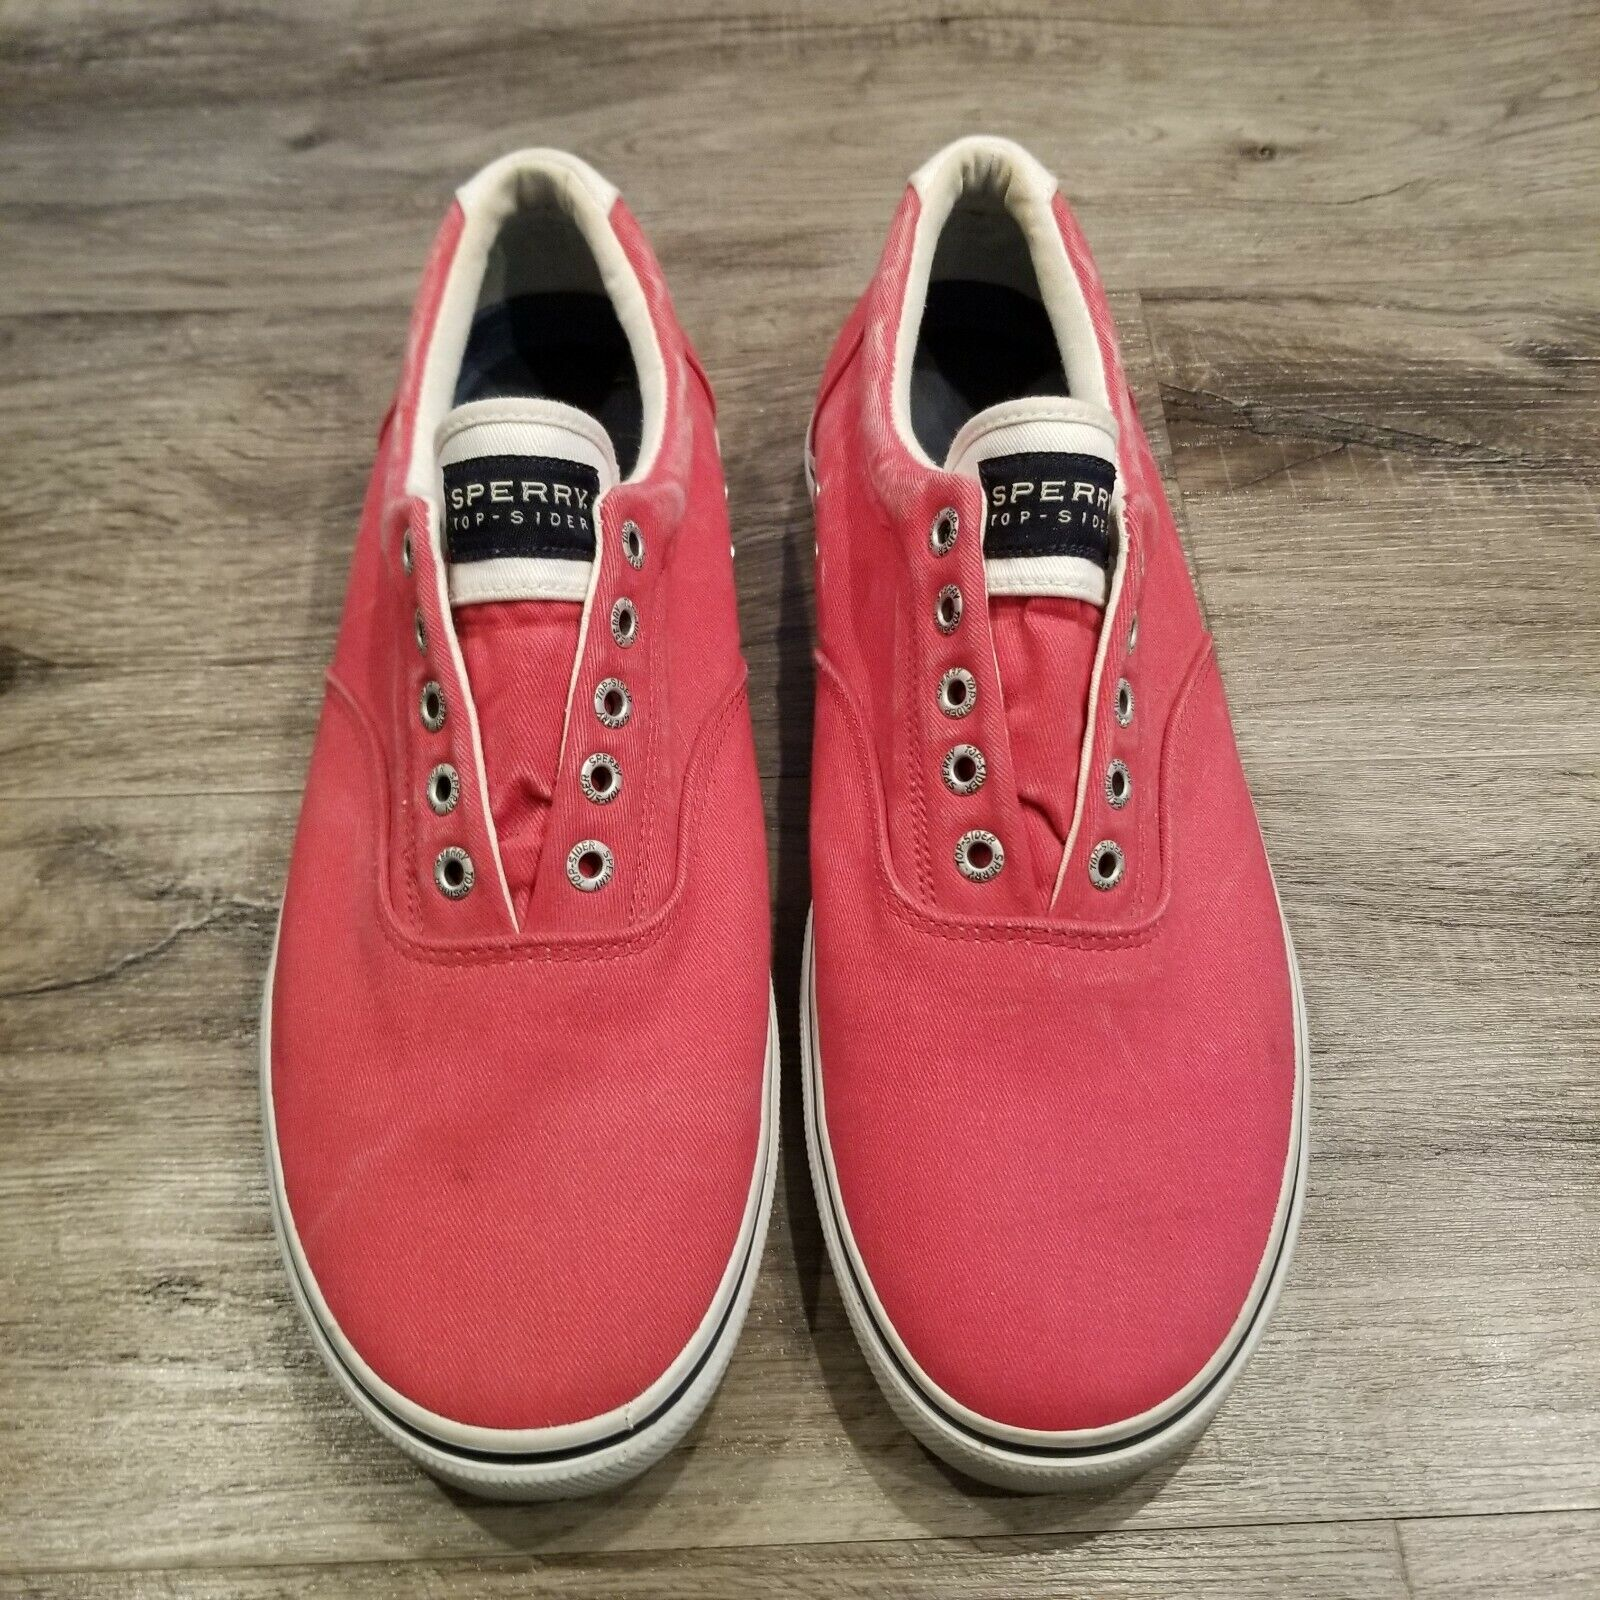 Sperry Top-Sider Men's Laceless Red Slip On - Size 10.5